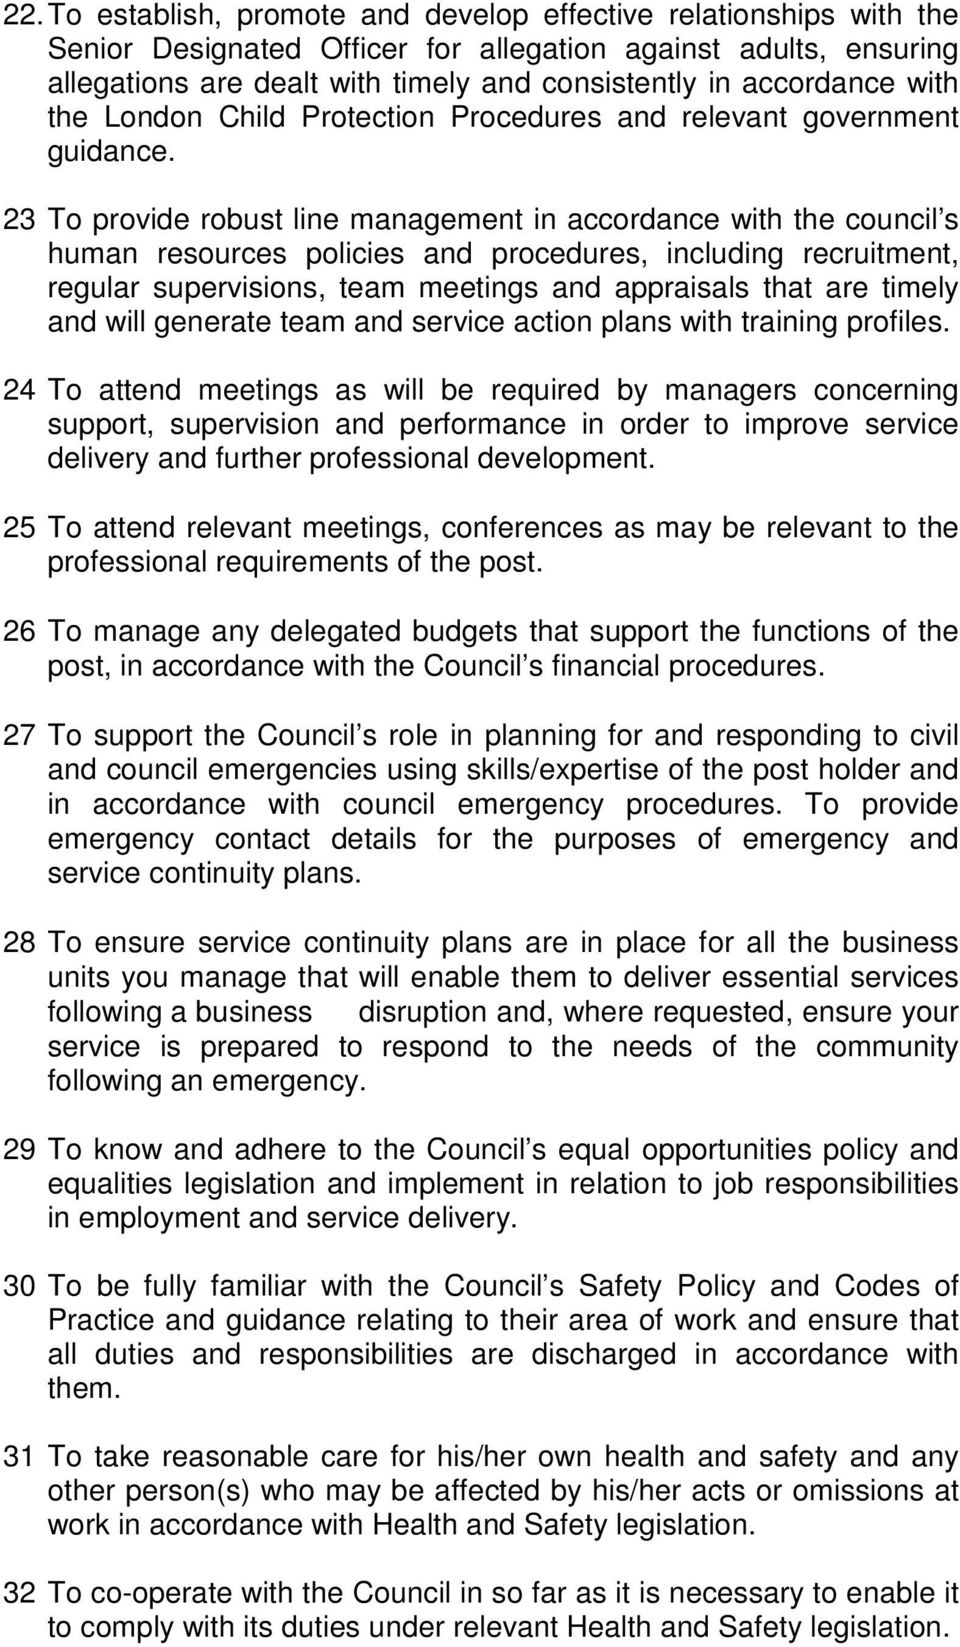 23 To provide robust line management in accordance with the council s human resources policies and procedures, including recruitment, regular supervisions, team meetings and appraisals that are